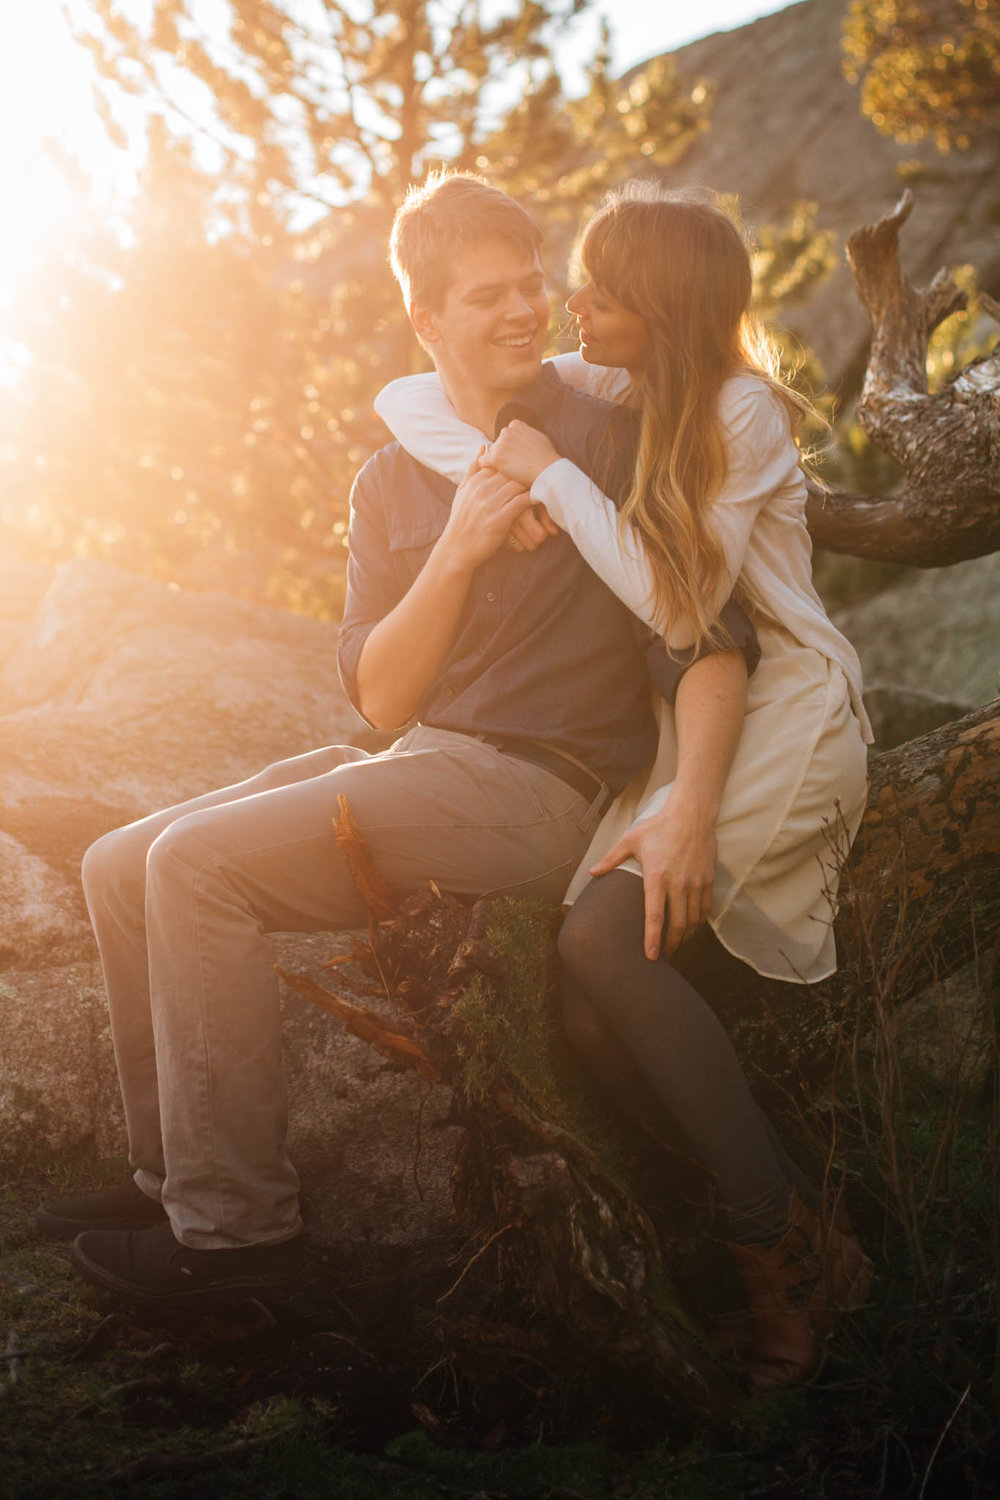 West Vancouver lifestyle couple's love story photographer - Emmy Lou Virginia Photography-16.jpg